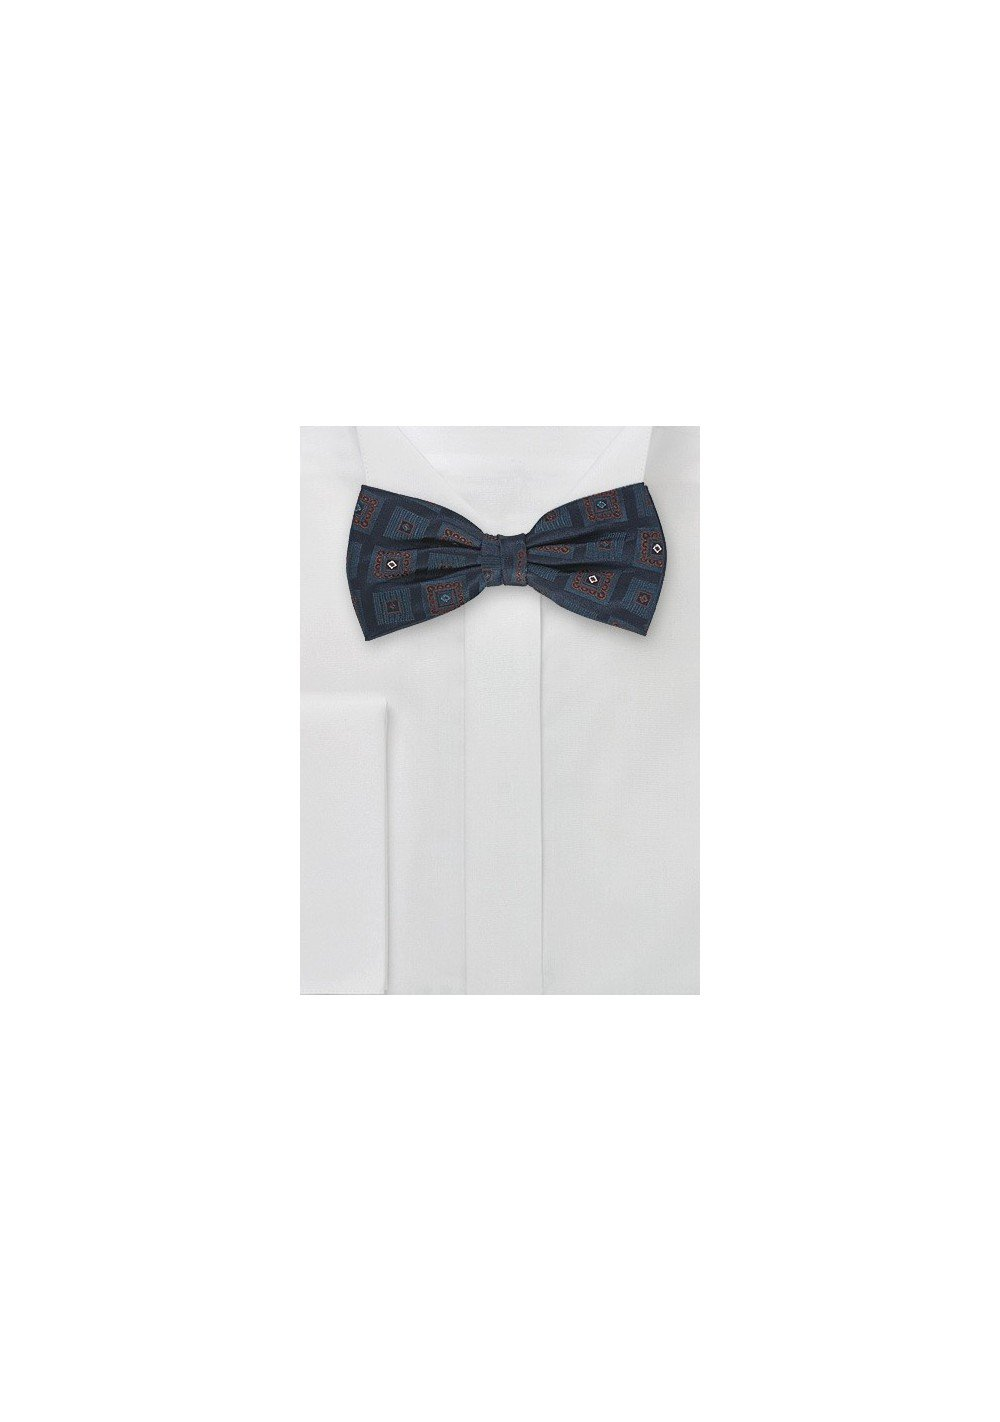 Silk Bow Tie in Navy Blue